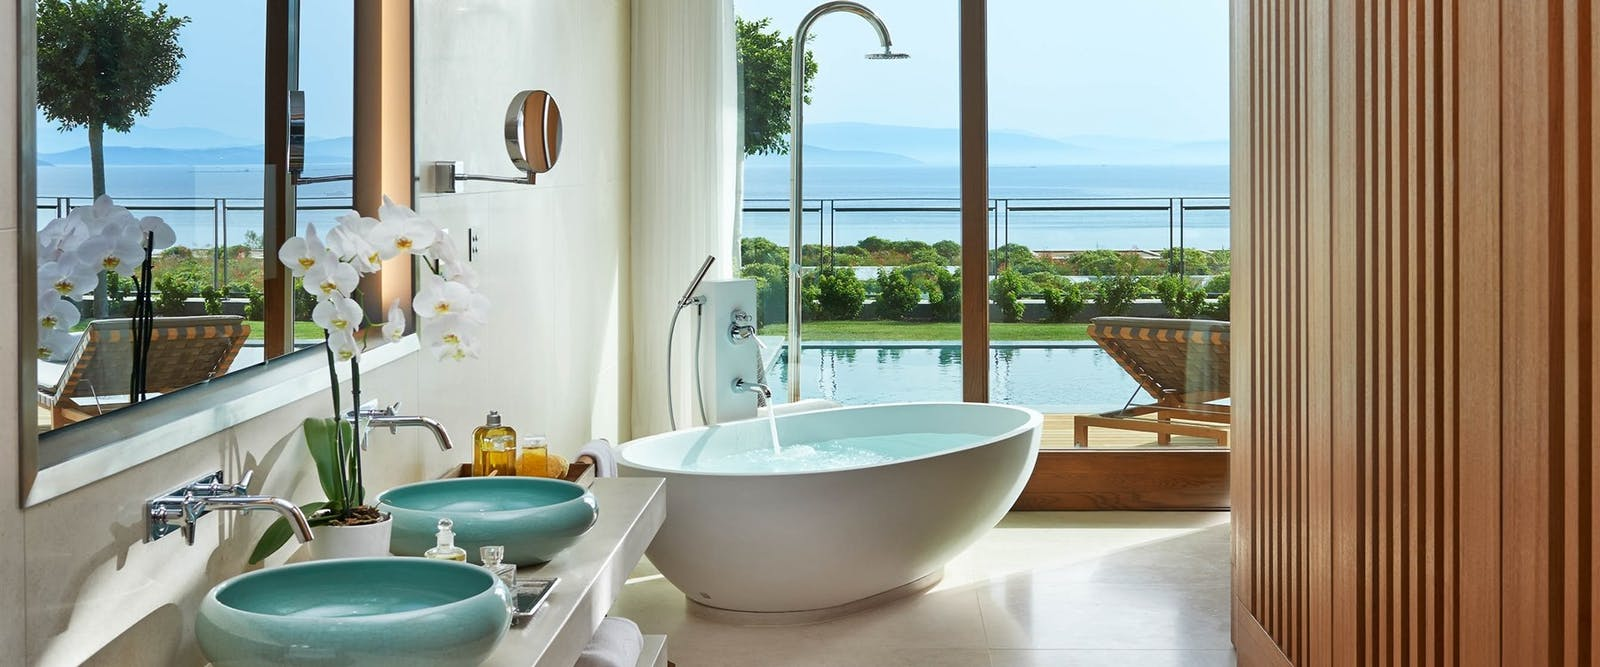 Bathroom, Mandarin Oriental Bodrum, Turkey